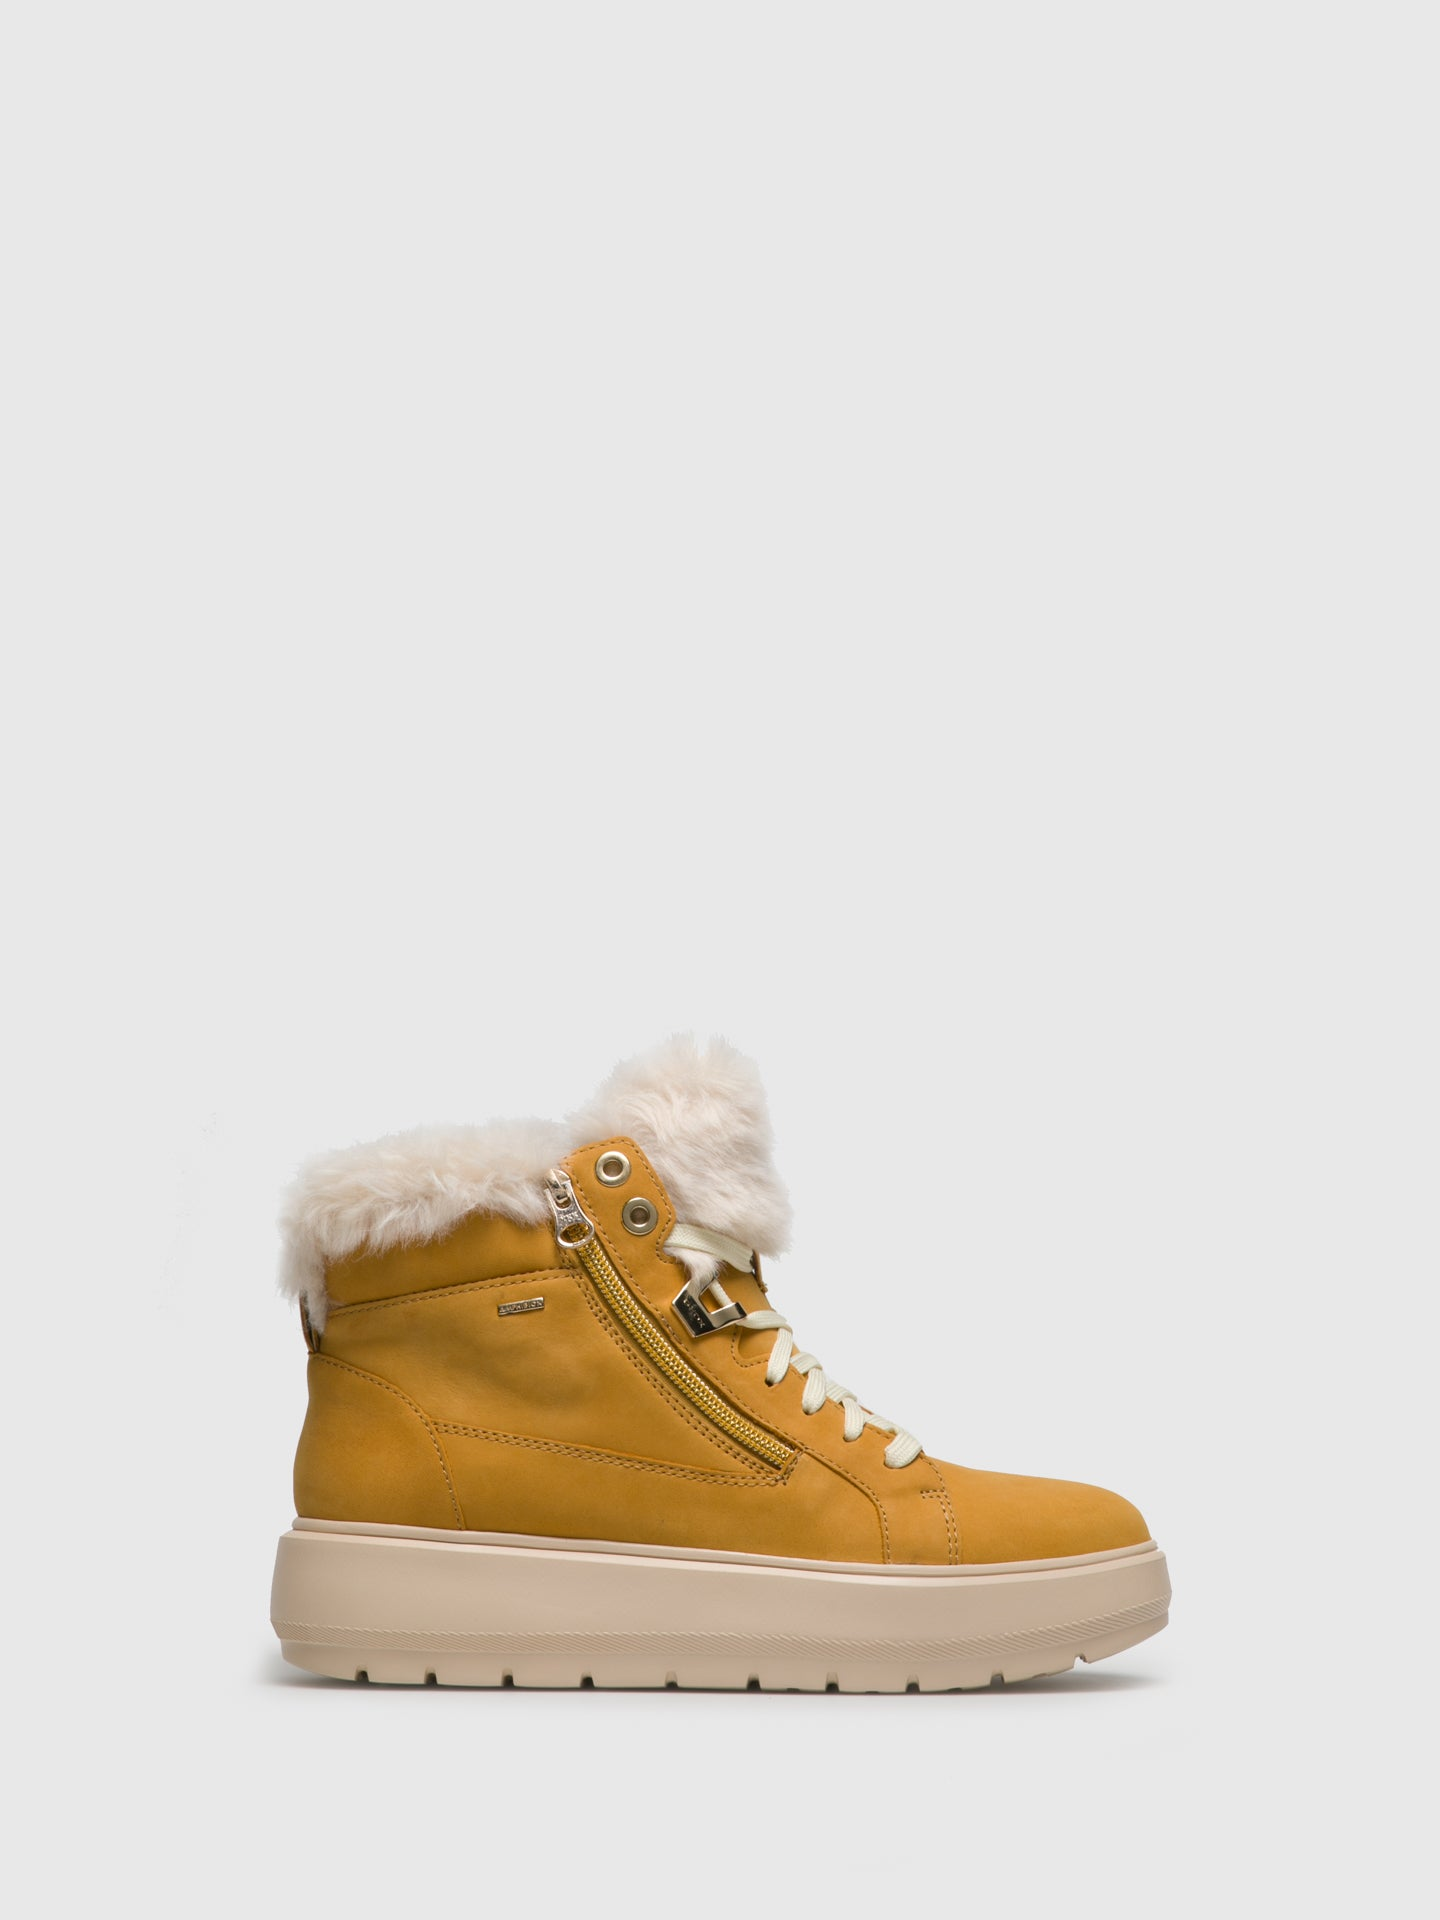 Geox Yellow Zip Up Ankle Boots